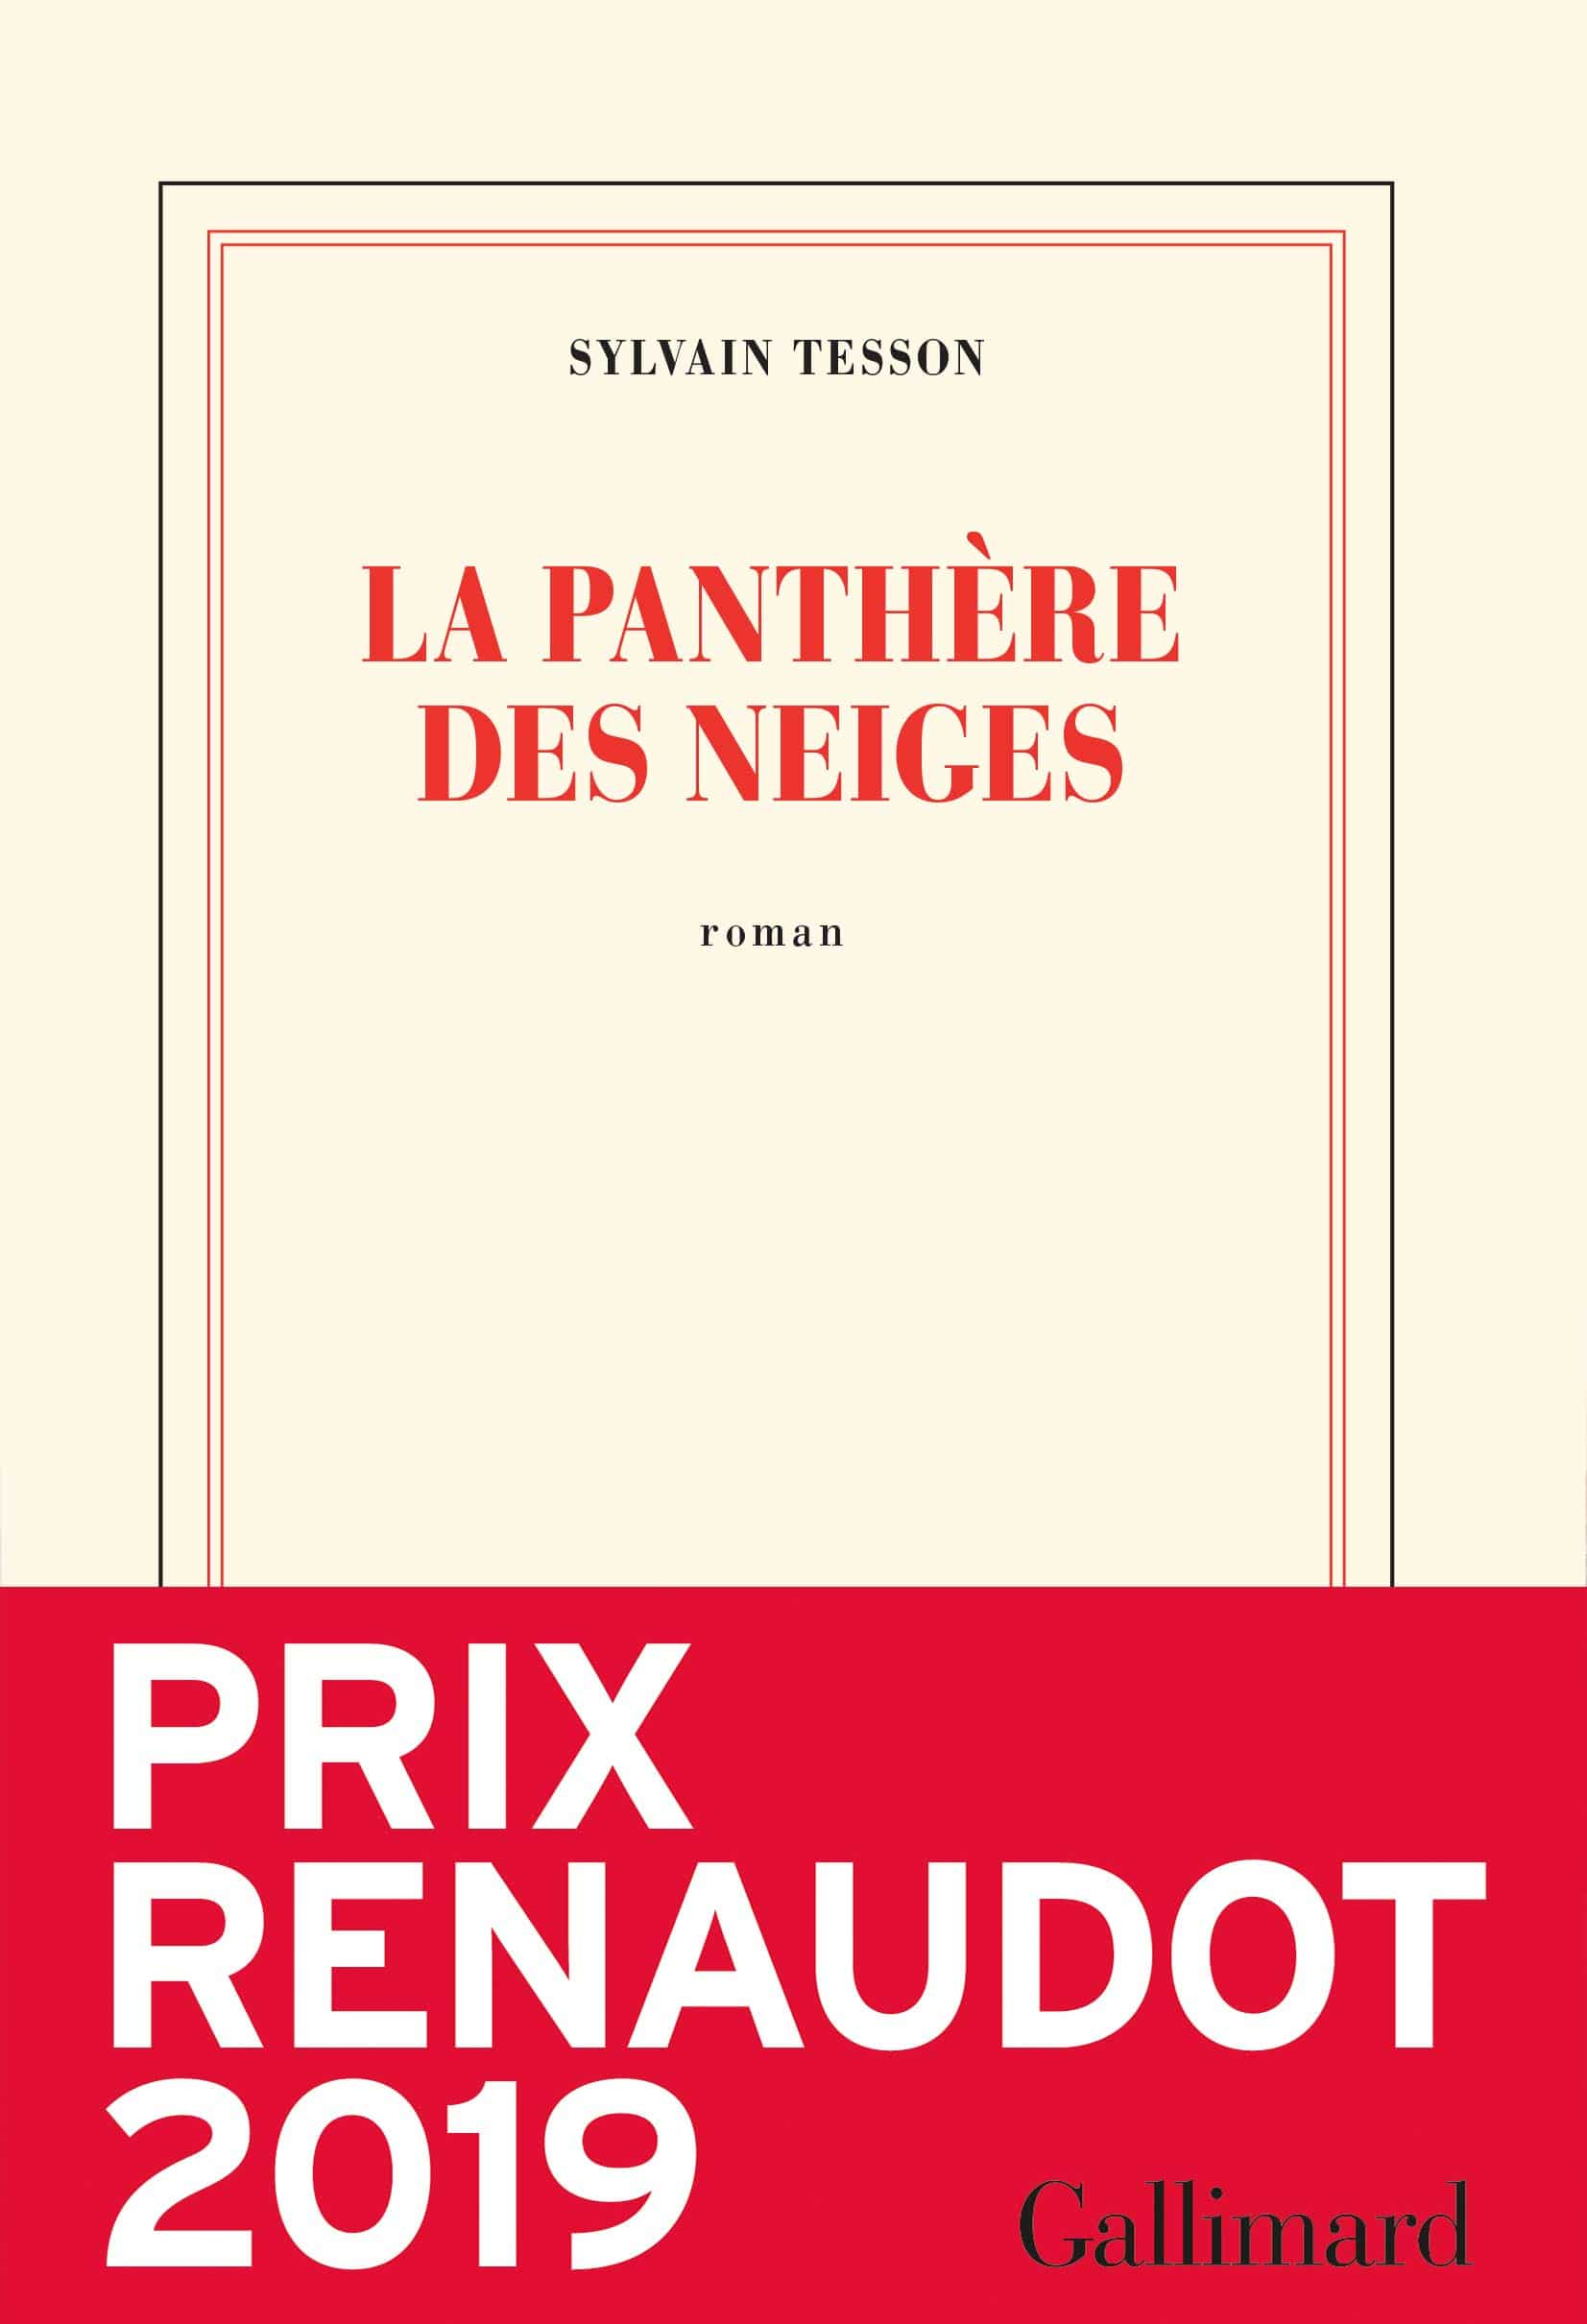 La panthere des neiges de Sylvain Tesson